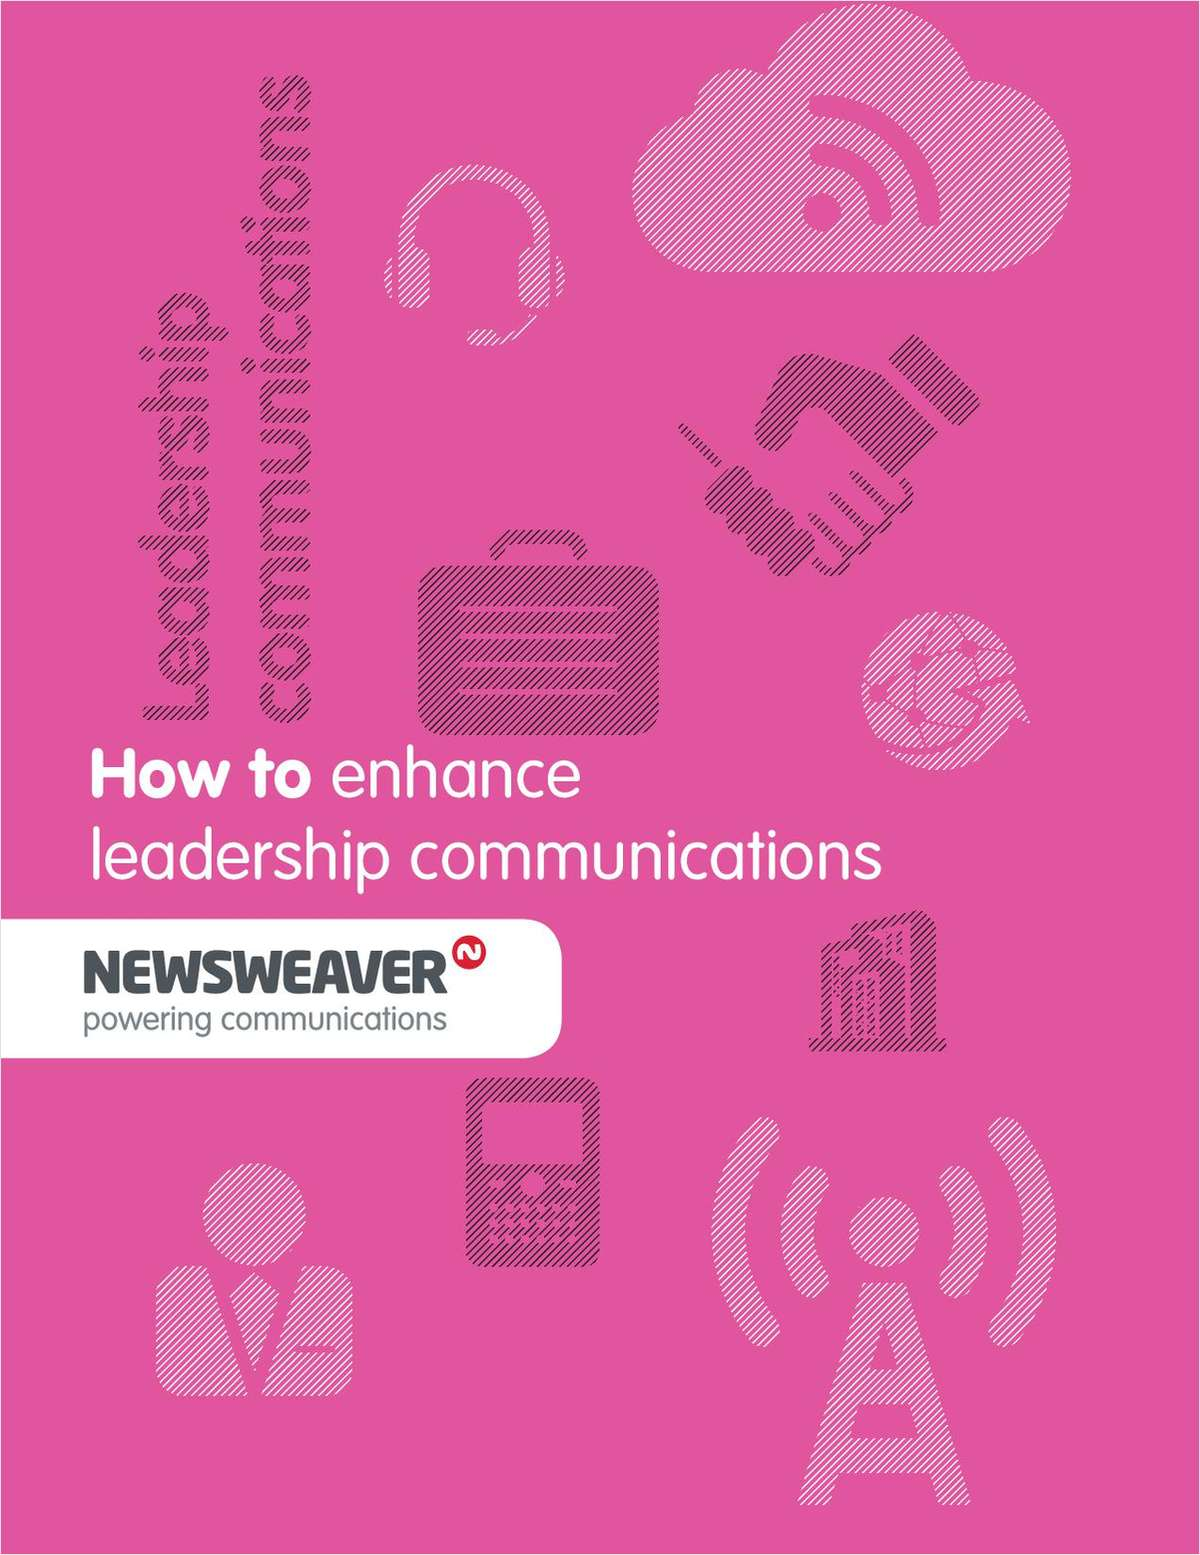 Five Steps To Improving Leadership Communications